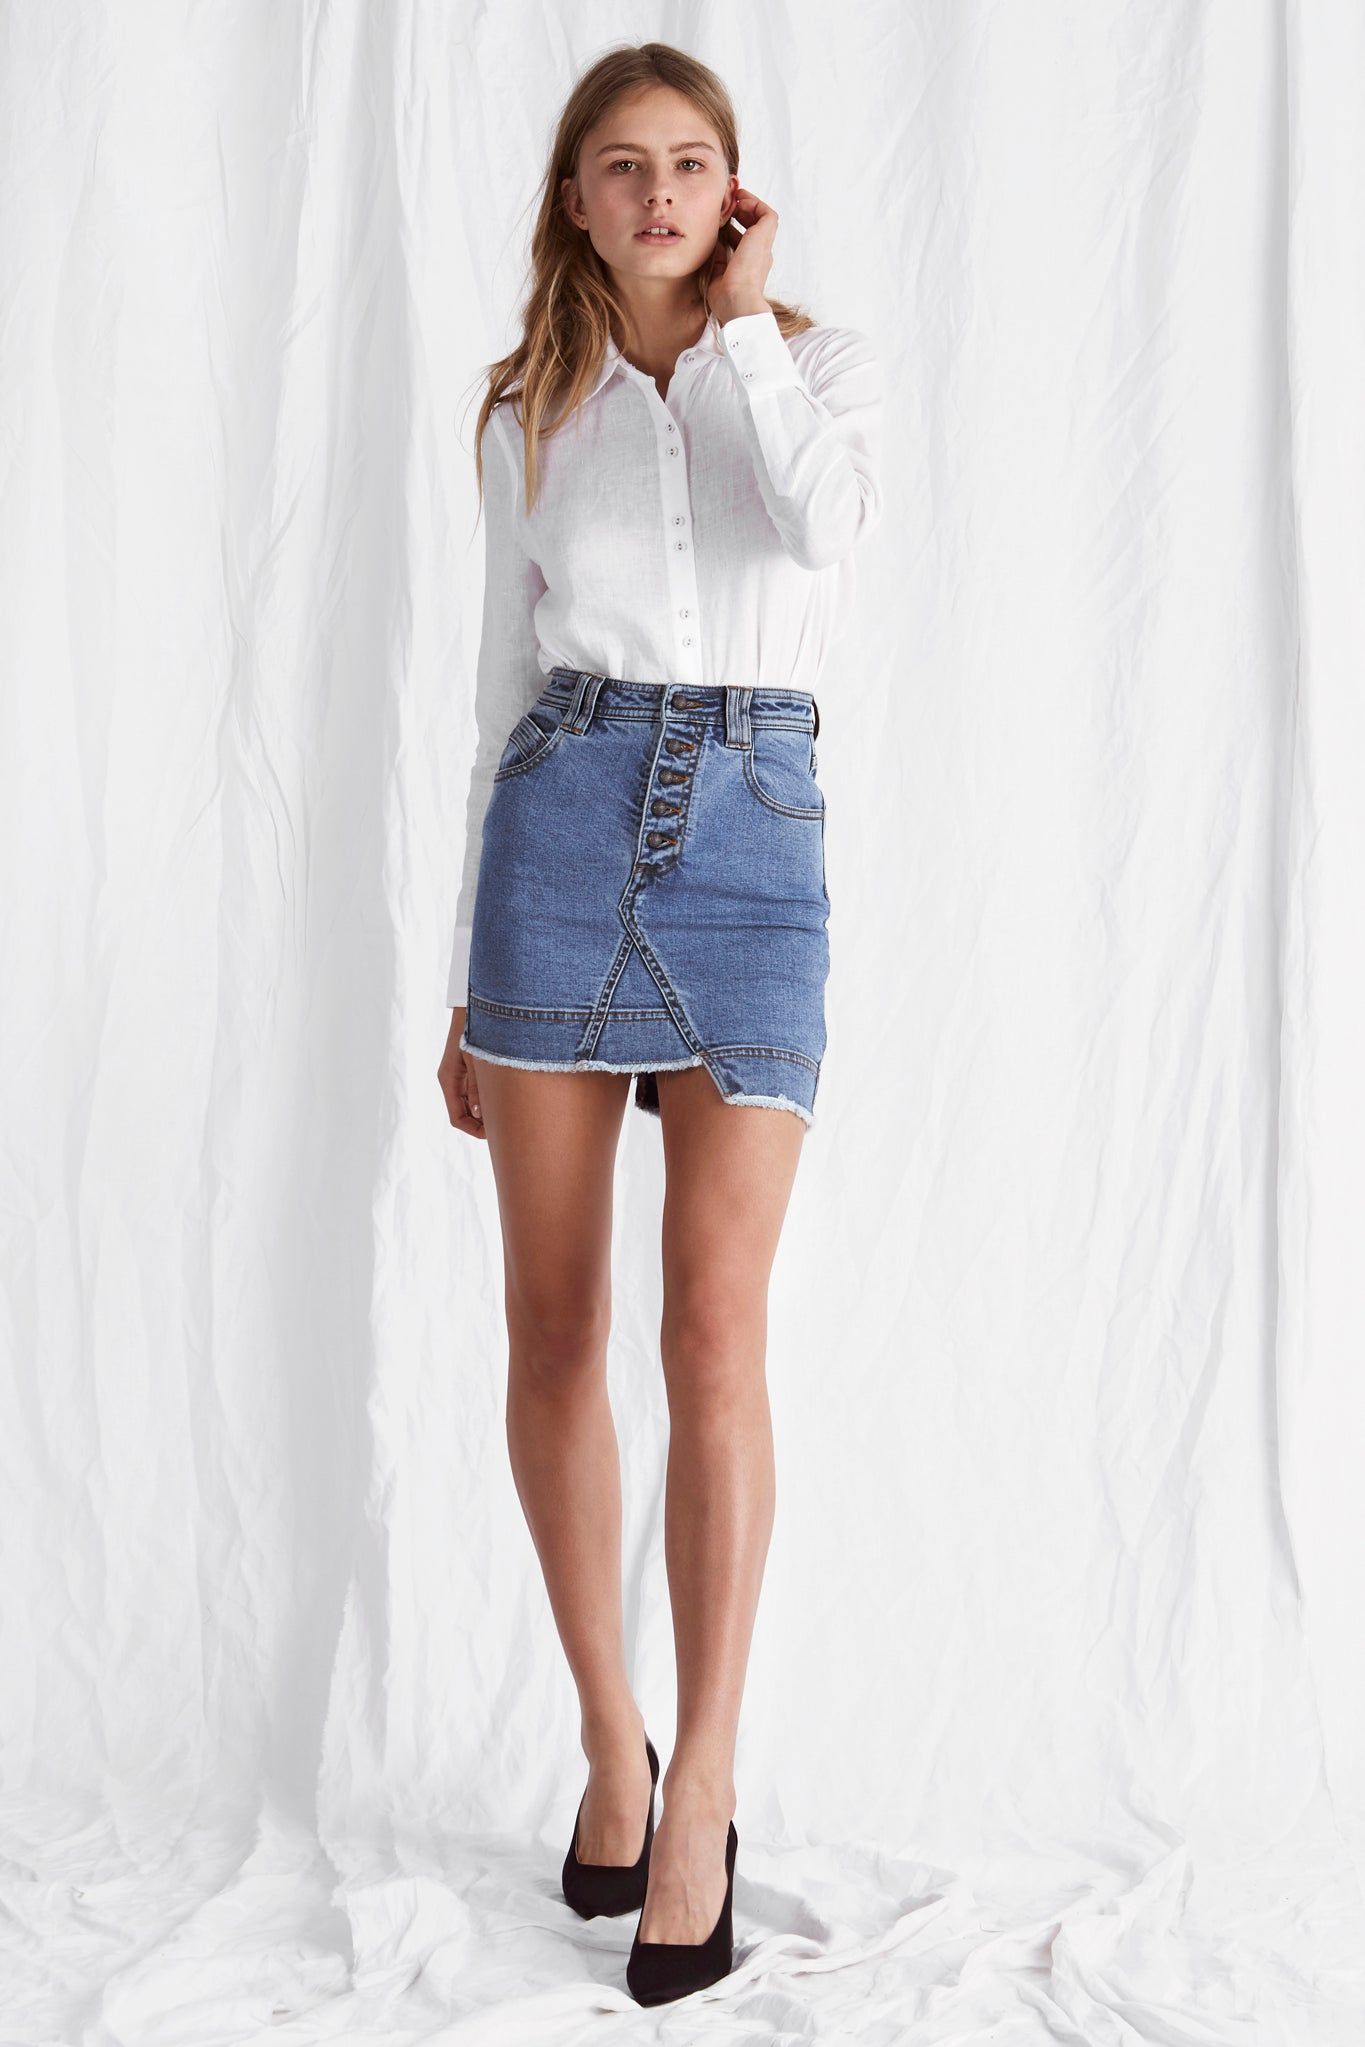 Coulton Mini Skirt Outfit View